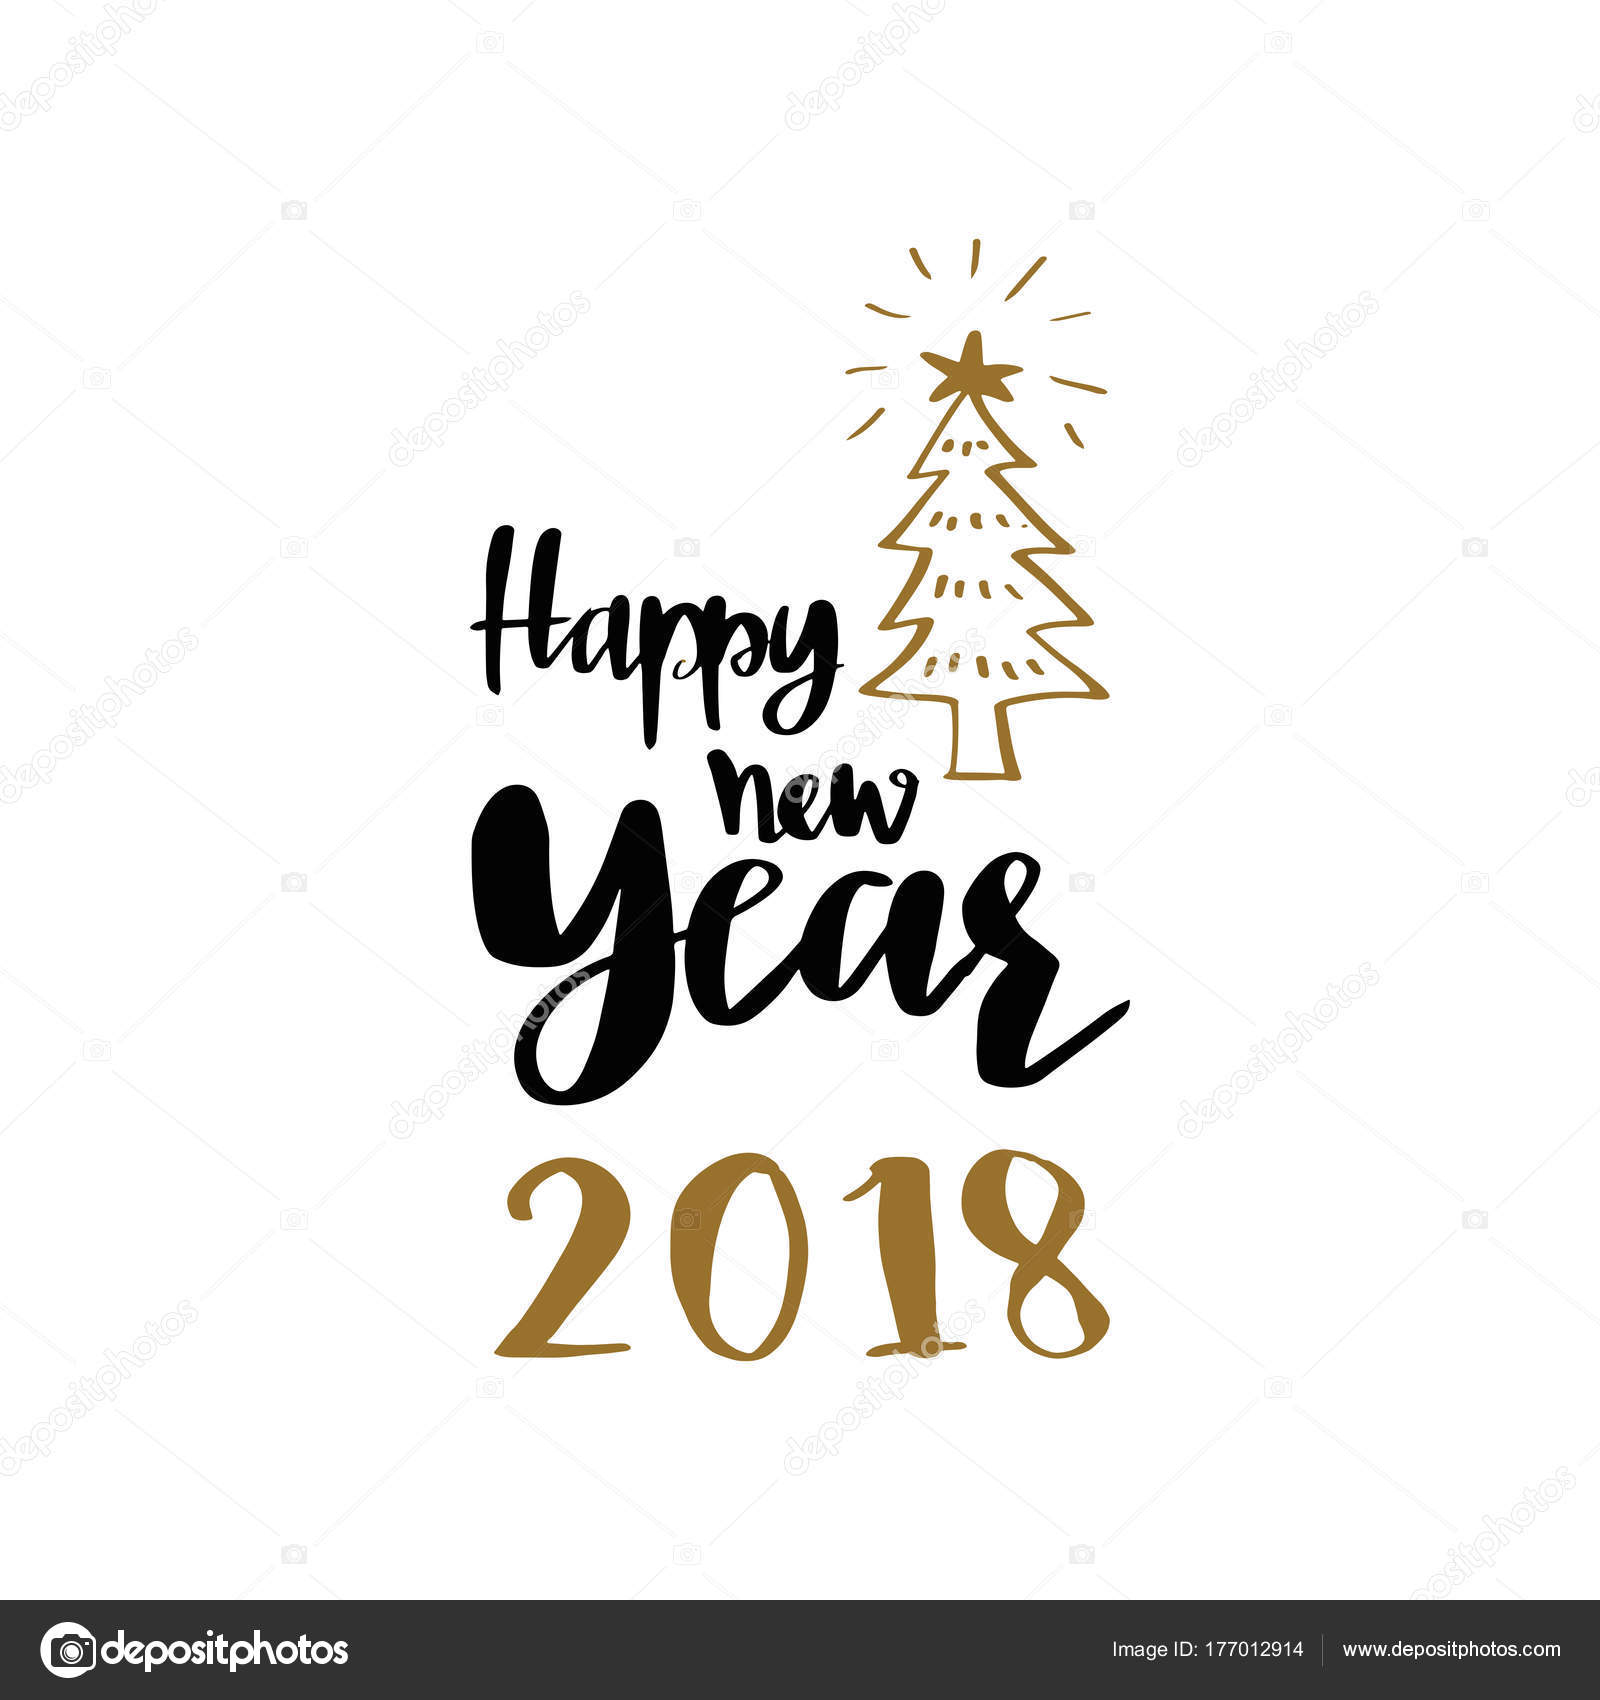 christmas tree and happy new year 2018 lettering calligraphy illustration vector greeting and invitation card